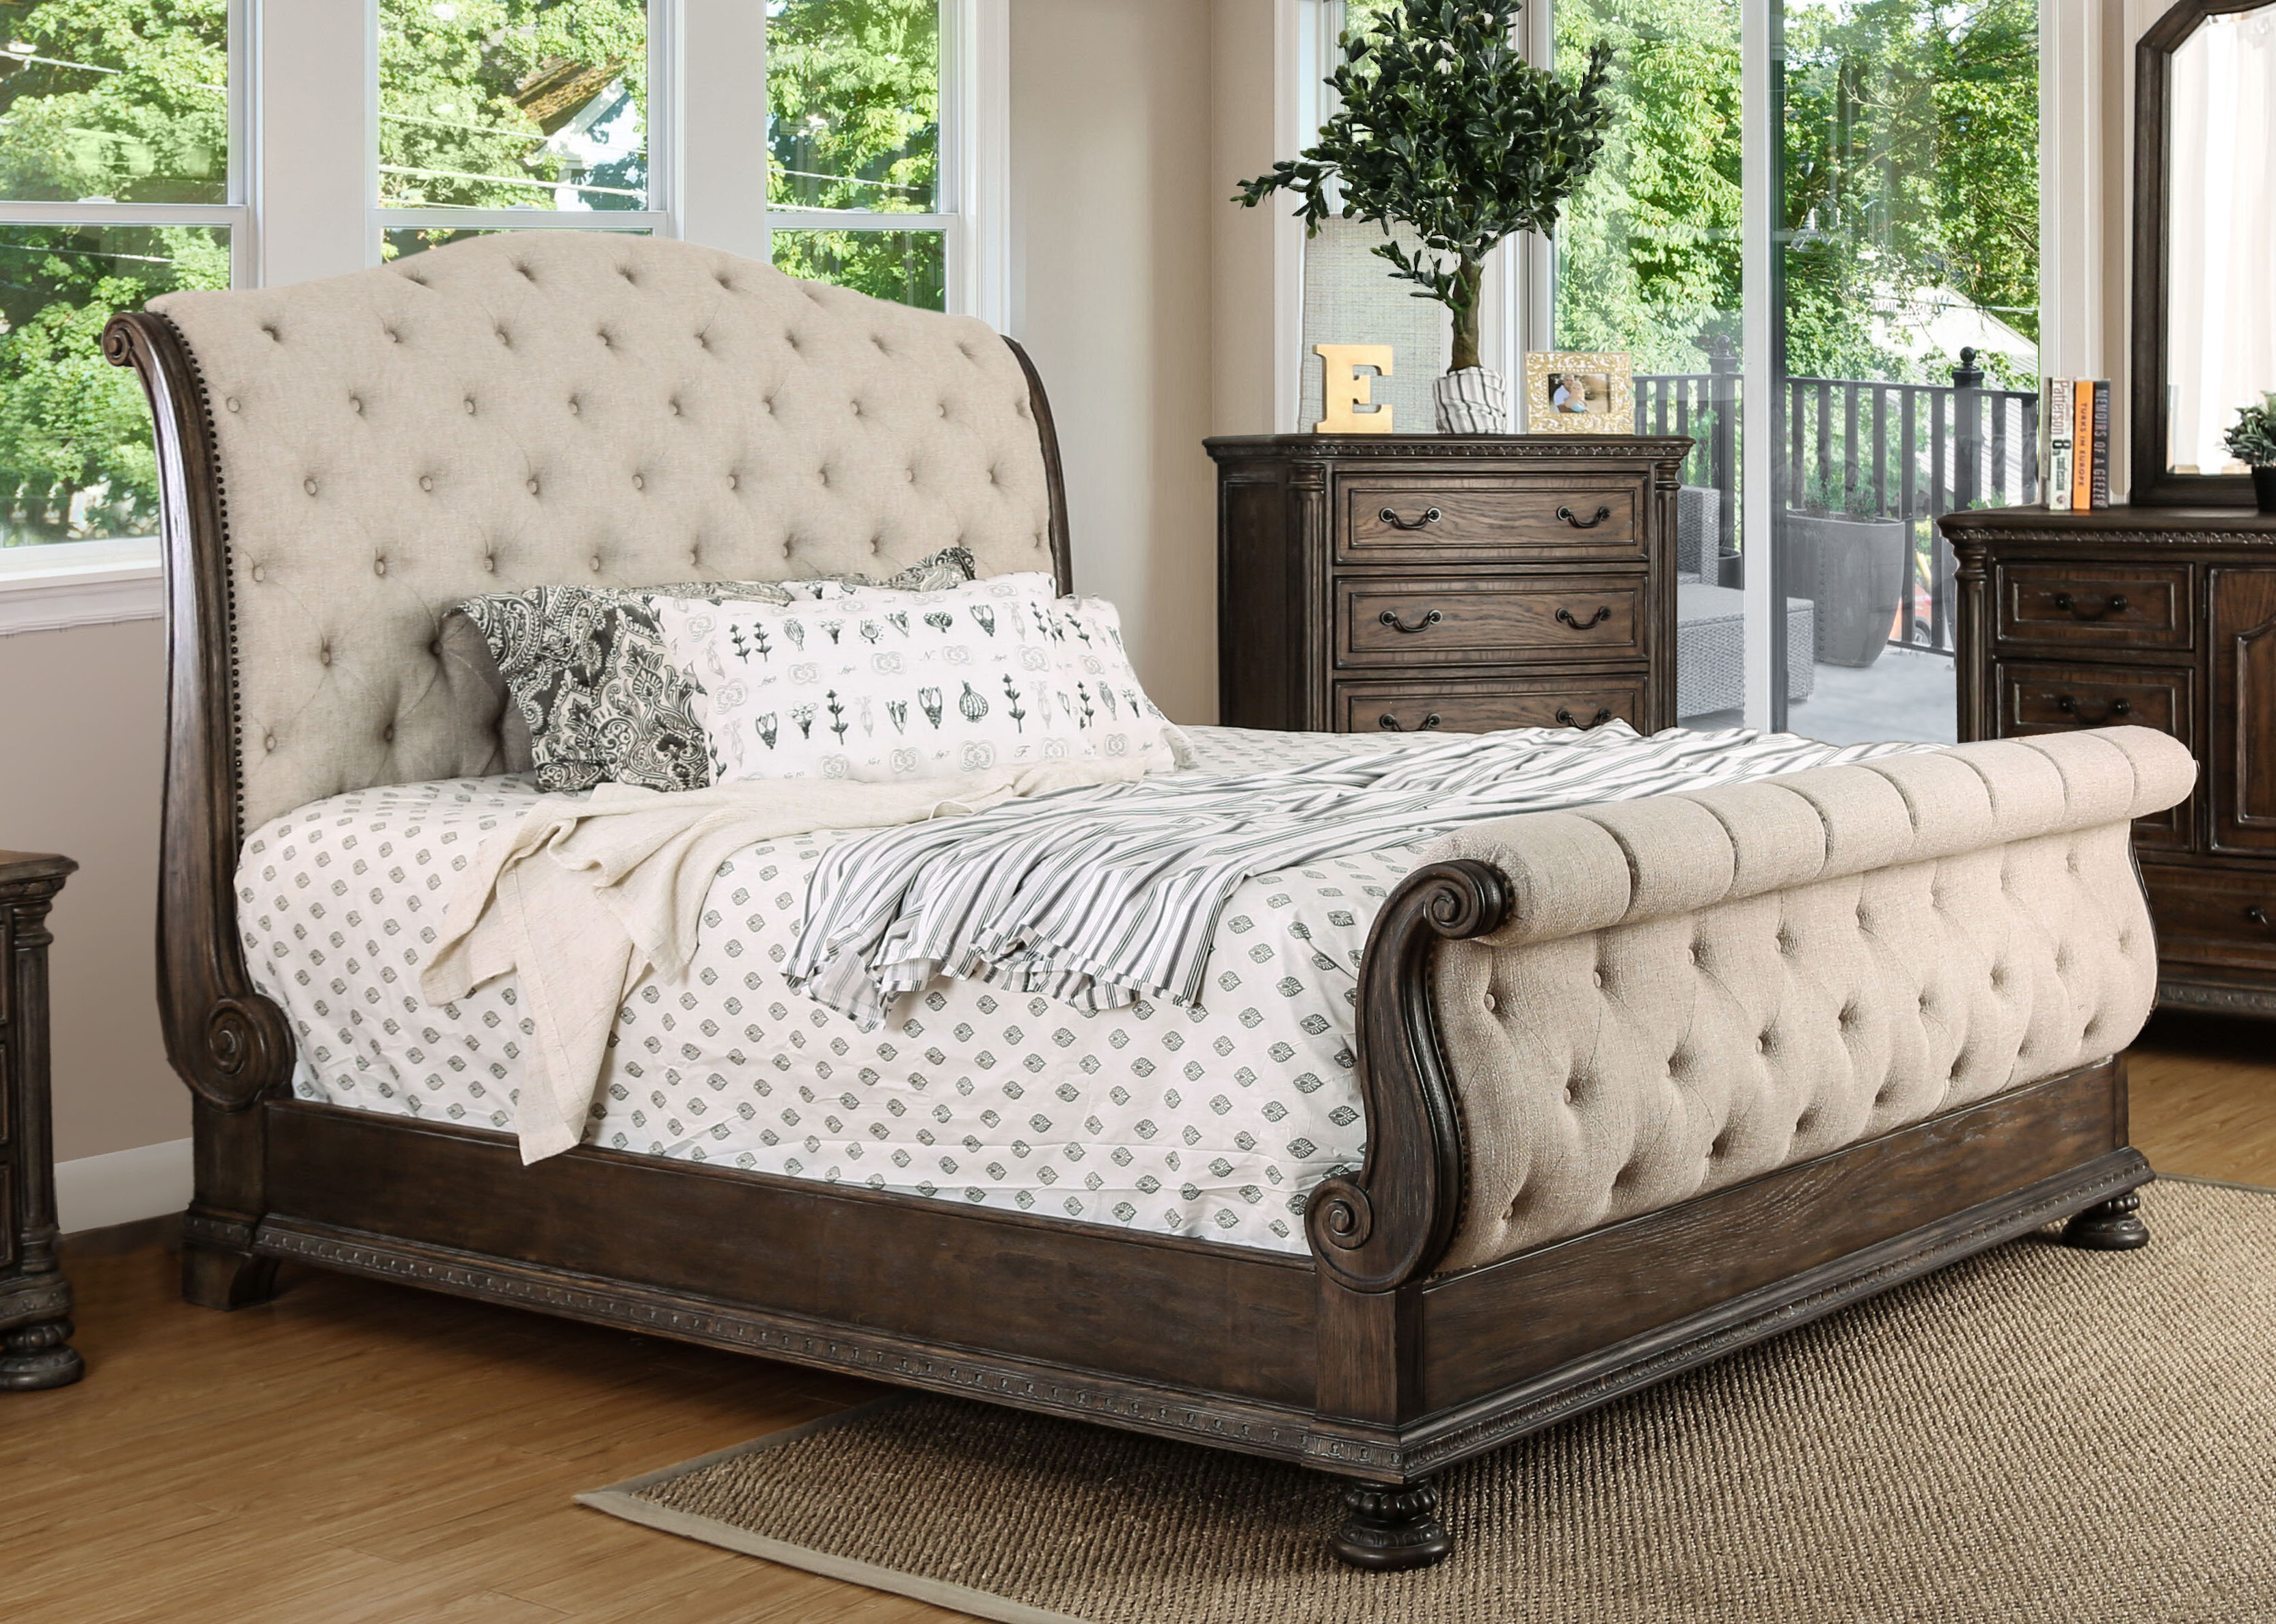 upholstered sleigh bed frame. Perfect Sleigh In Upholstered Sleigh Bed Frame E